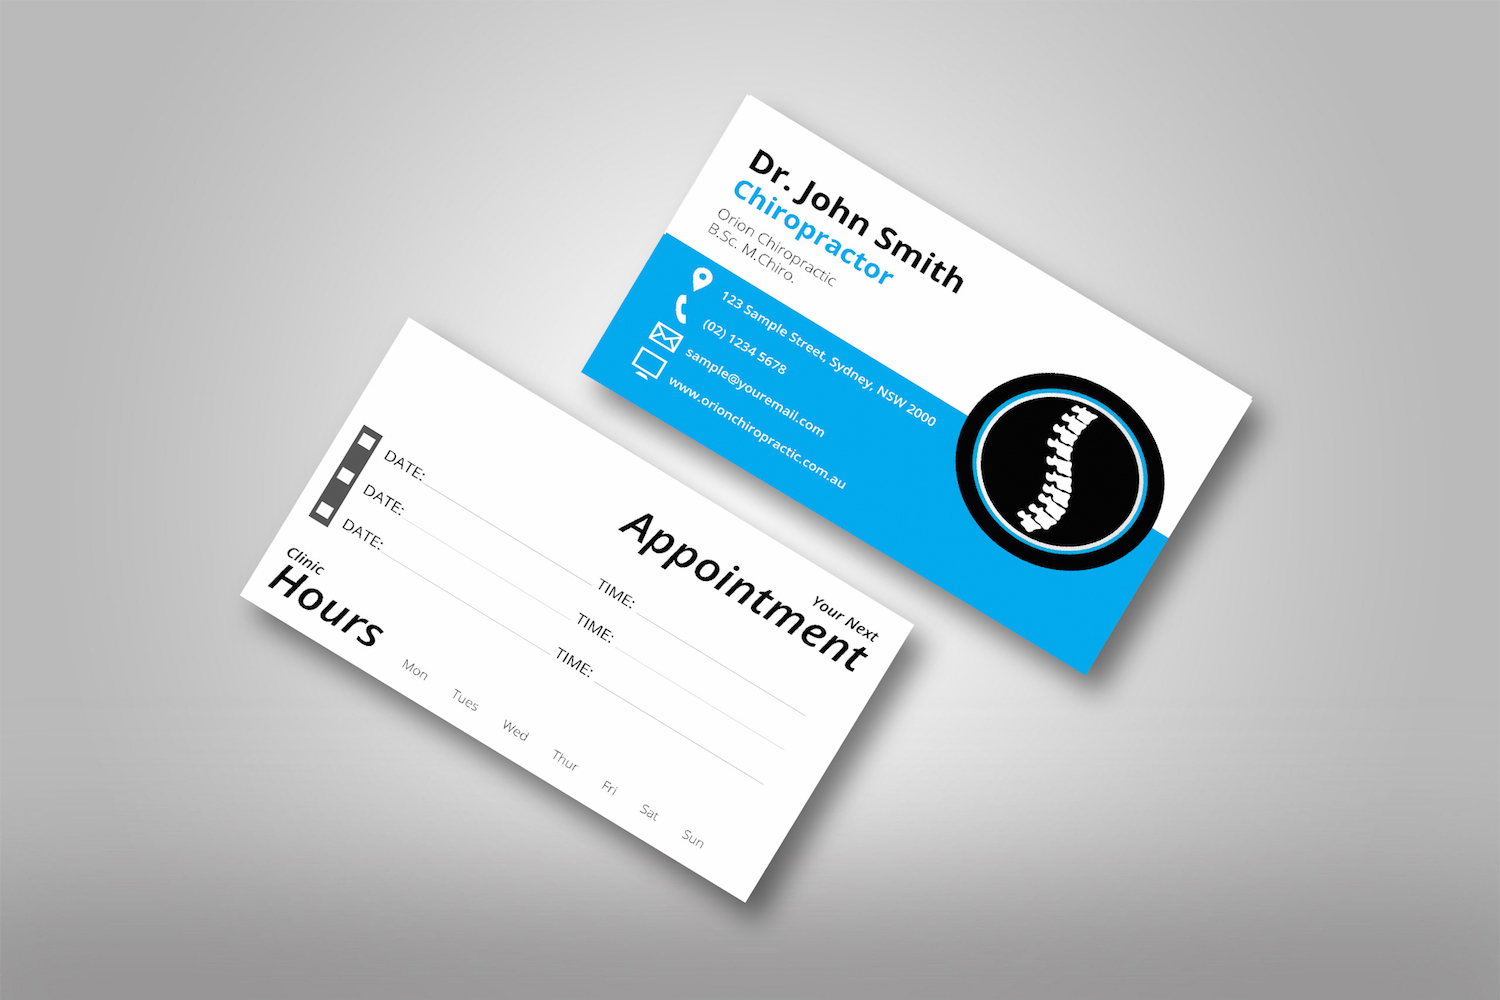 Classic chiropractic business cards 2 orion marketing chiropractic business cards back orion marketing double sided classic 2 reheart Choice Image